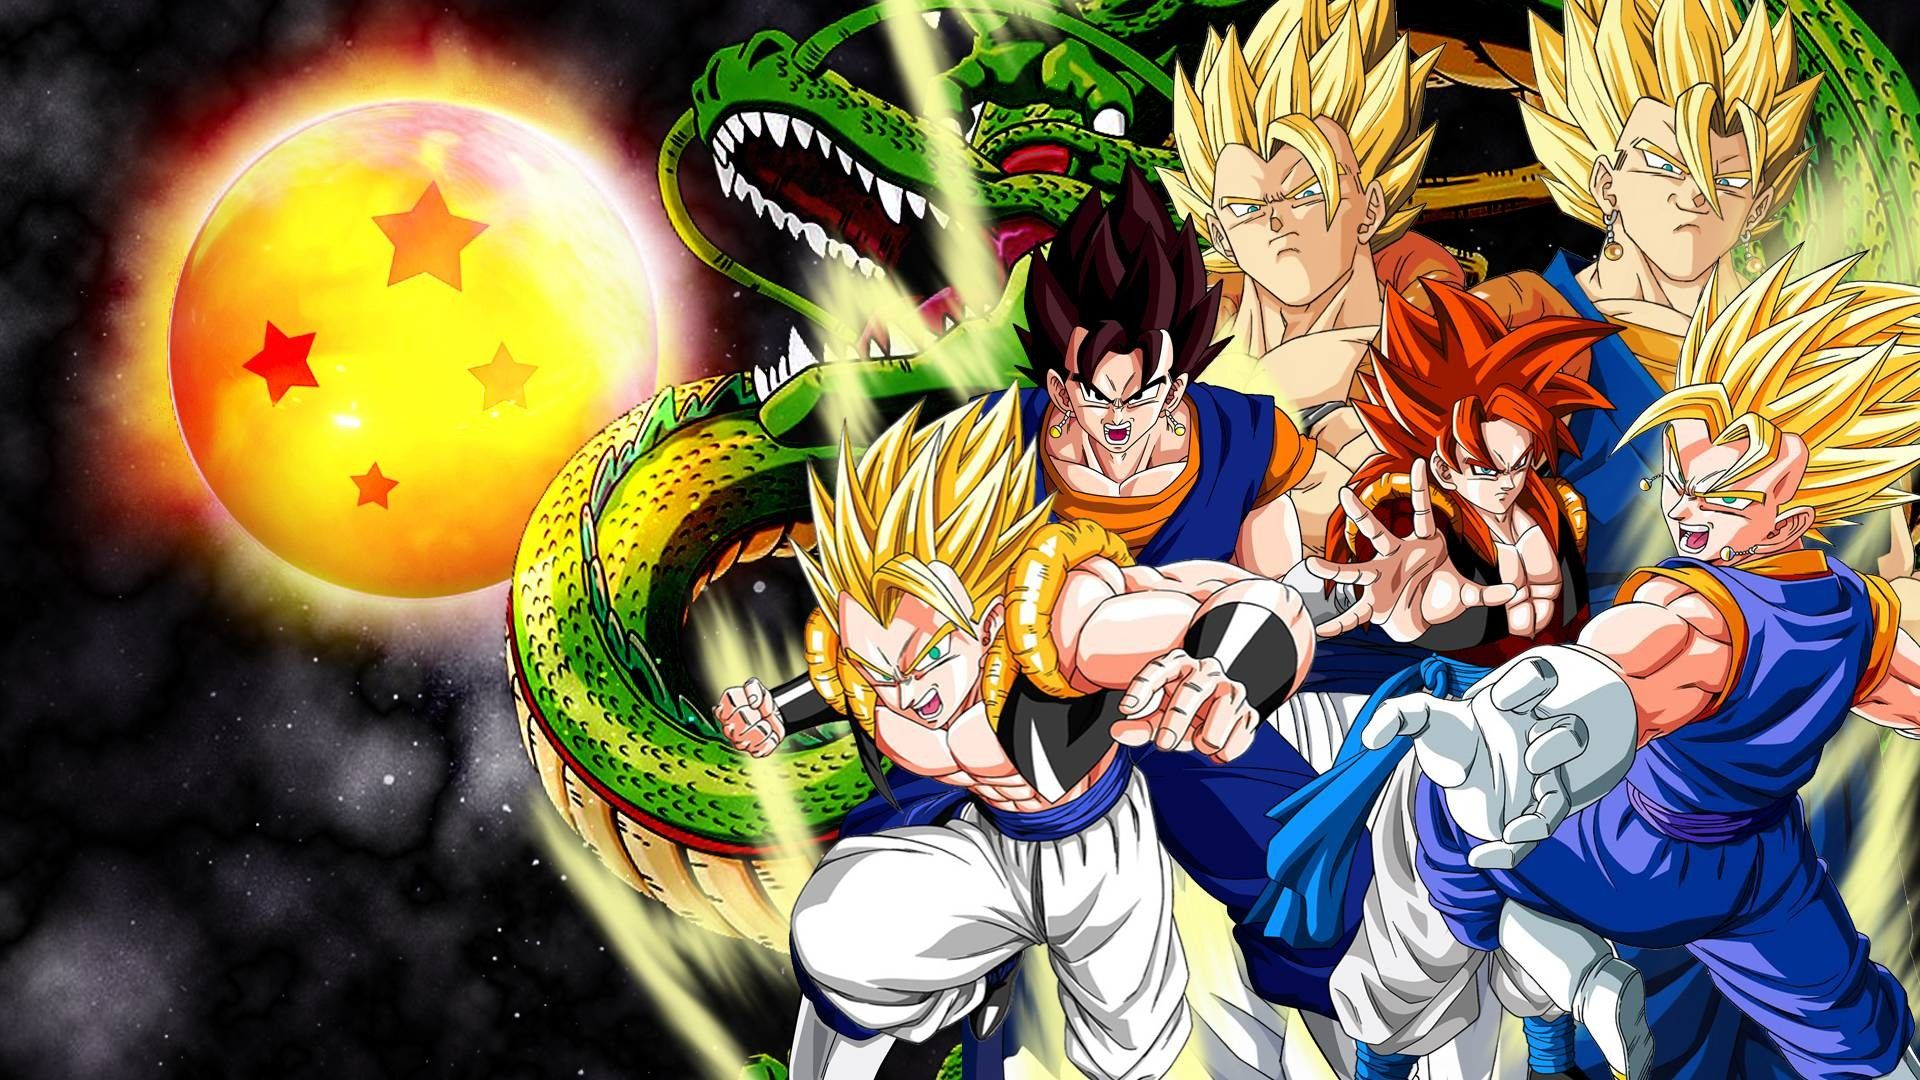 Dragon Ball Z Live Wallpaper Download For Pc Hd Dragon Ball Z Wallpaper 72 Pictures Dragon Ball Z G In 2020 Dragon Ball Wallpapers Dbz Wallpapers Hd Anime Wallpapers